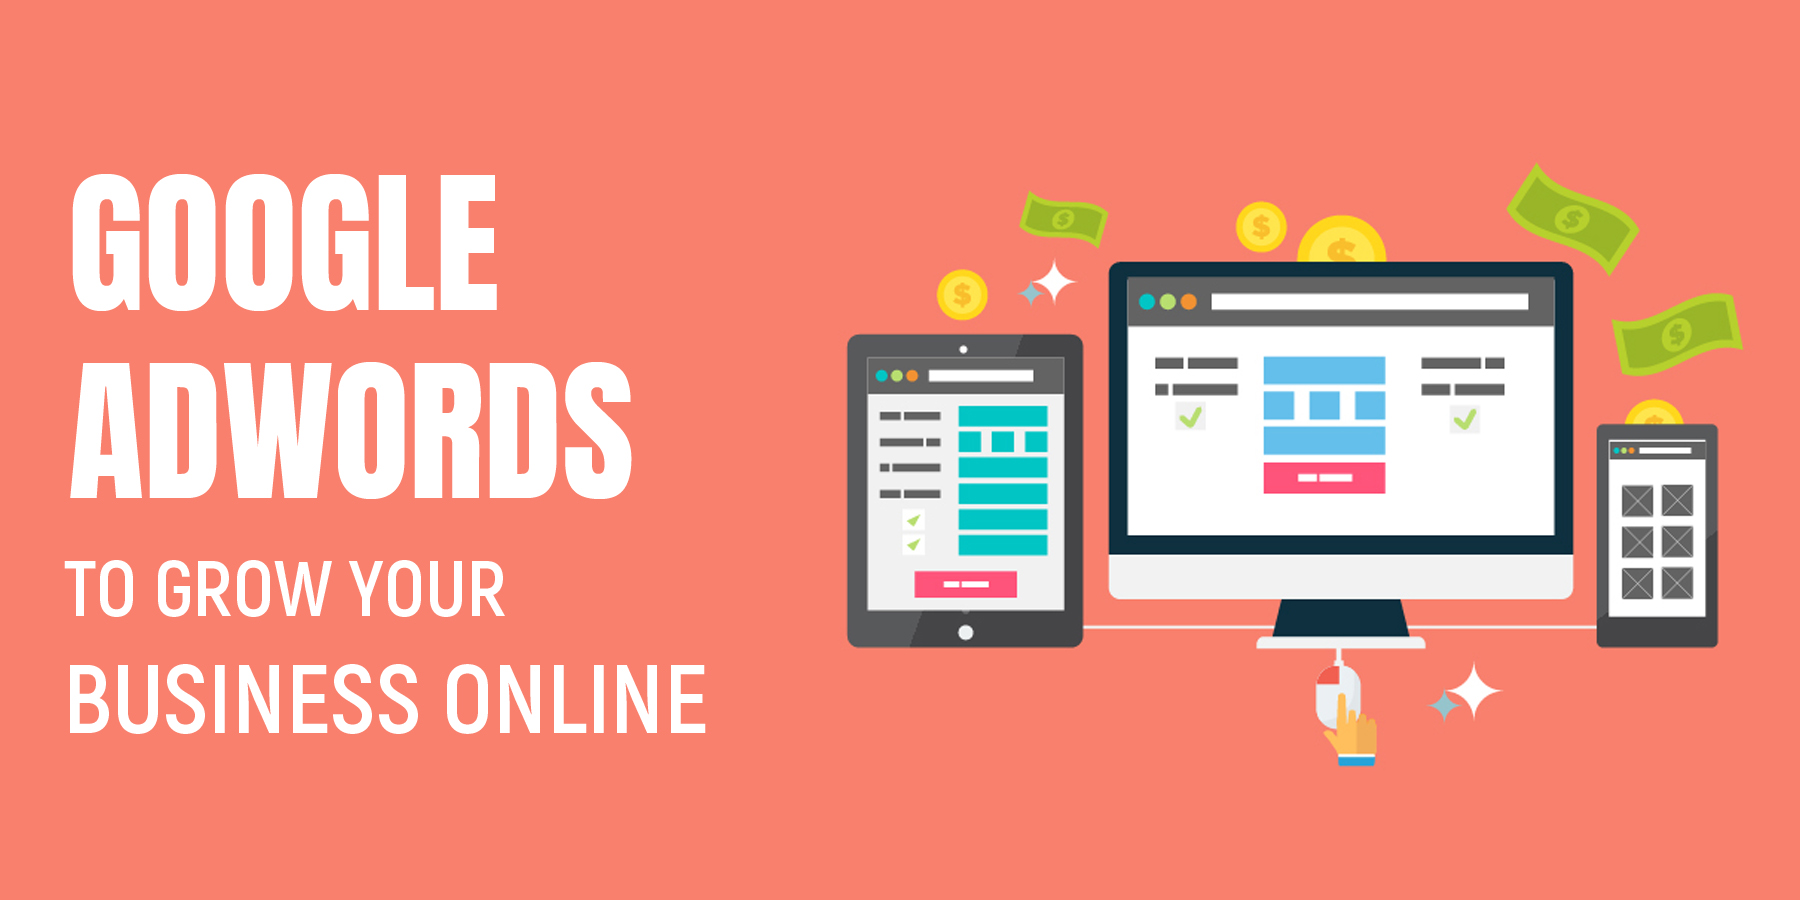 5 Major Benefits Of Google AdWords For Your Business